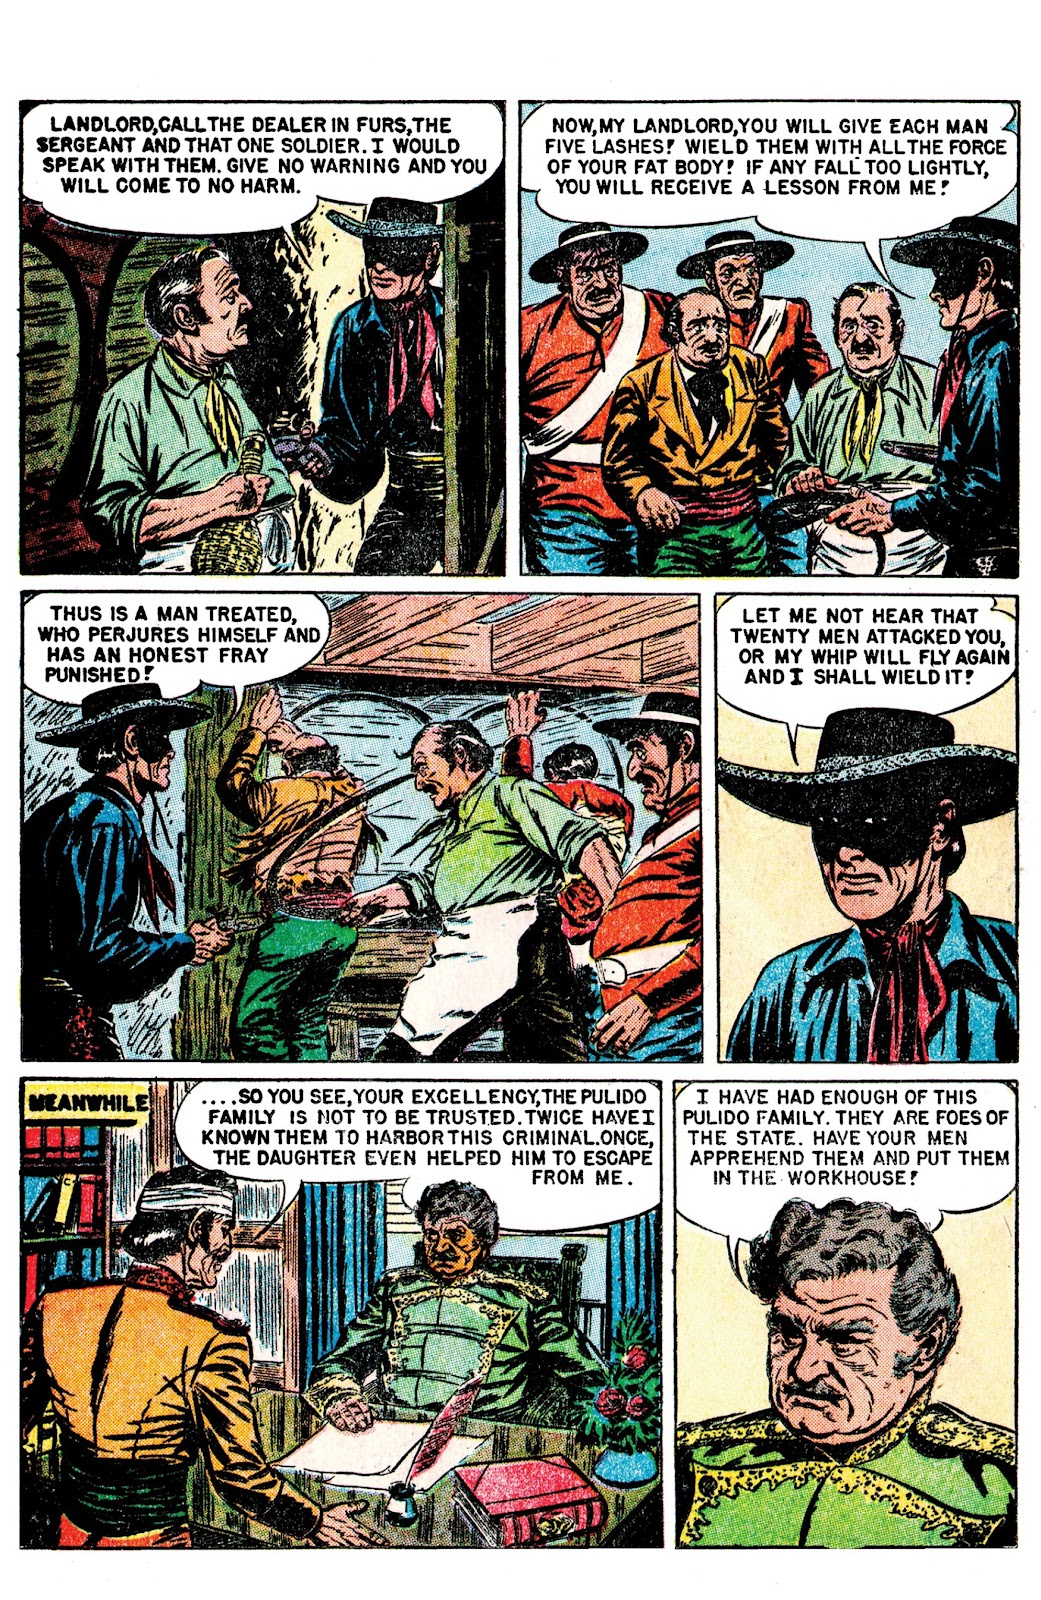 Read online AM Archives: The Mark of Zorro #1 1949 Dell Edition comic -  Issue #1 1949 Dell Edition Full - 24